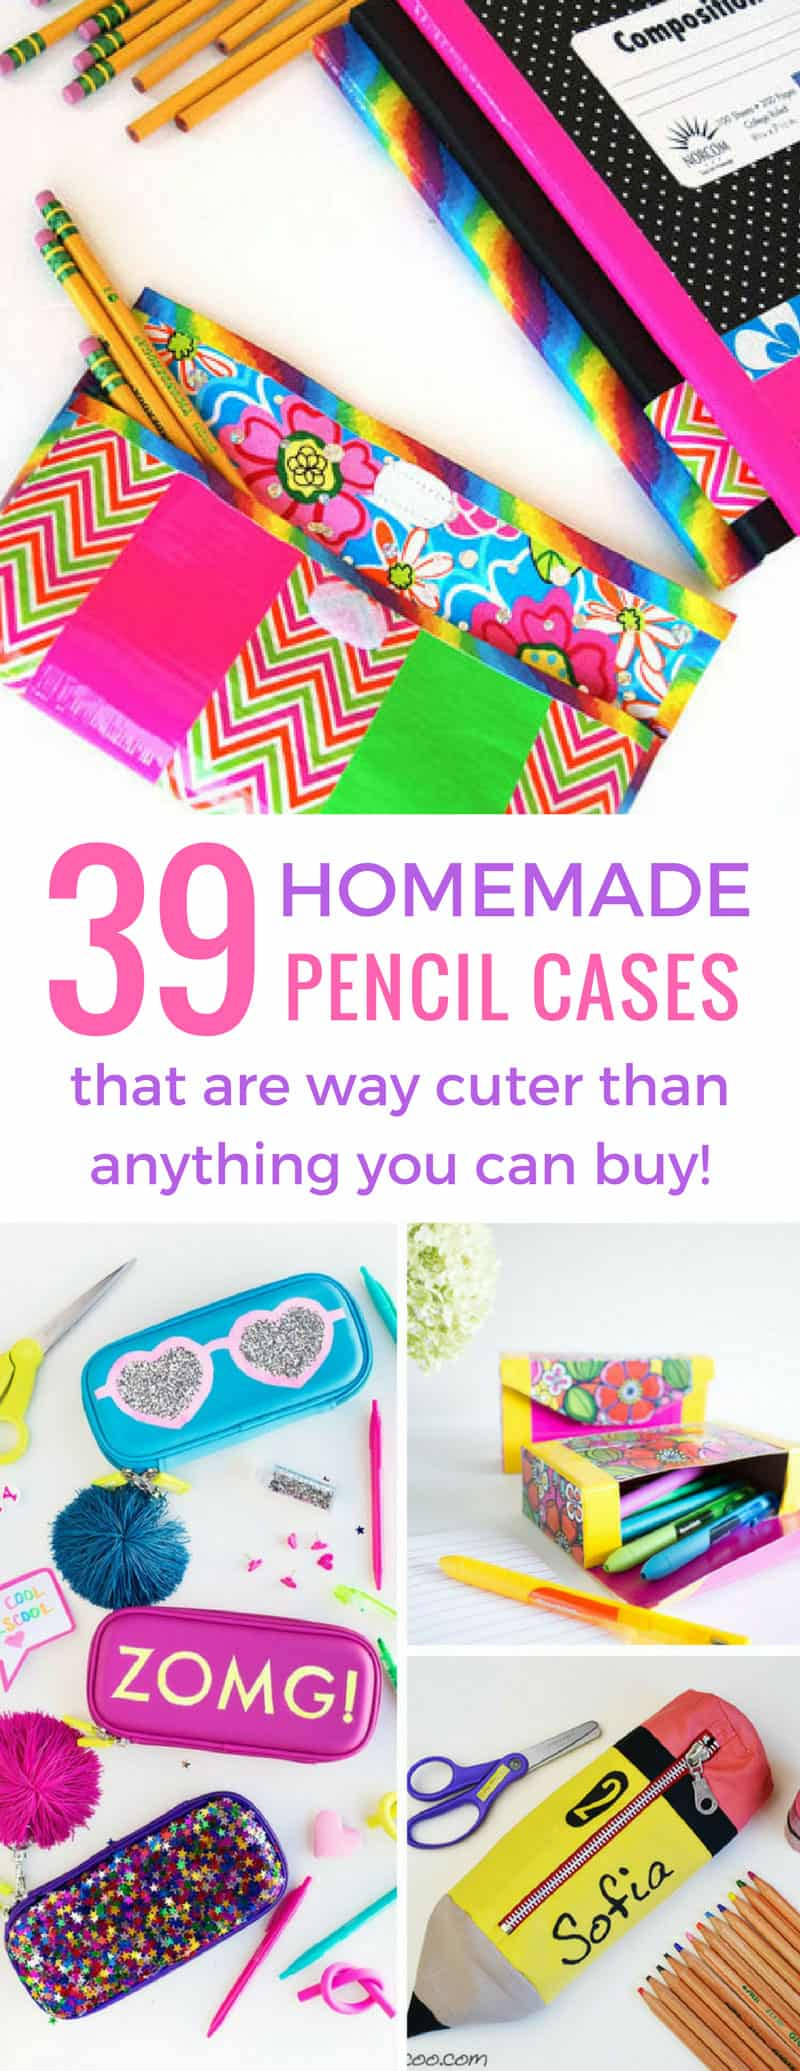 Wow these DIY pencil cases are super cute and the kids are going to love them for back to school!